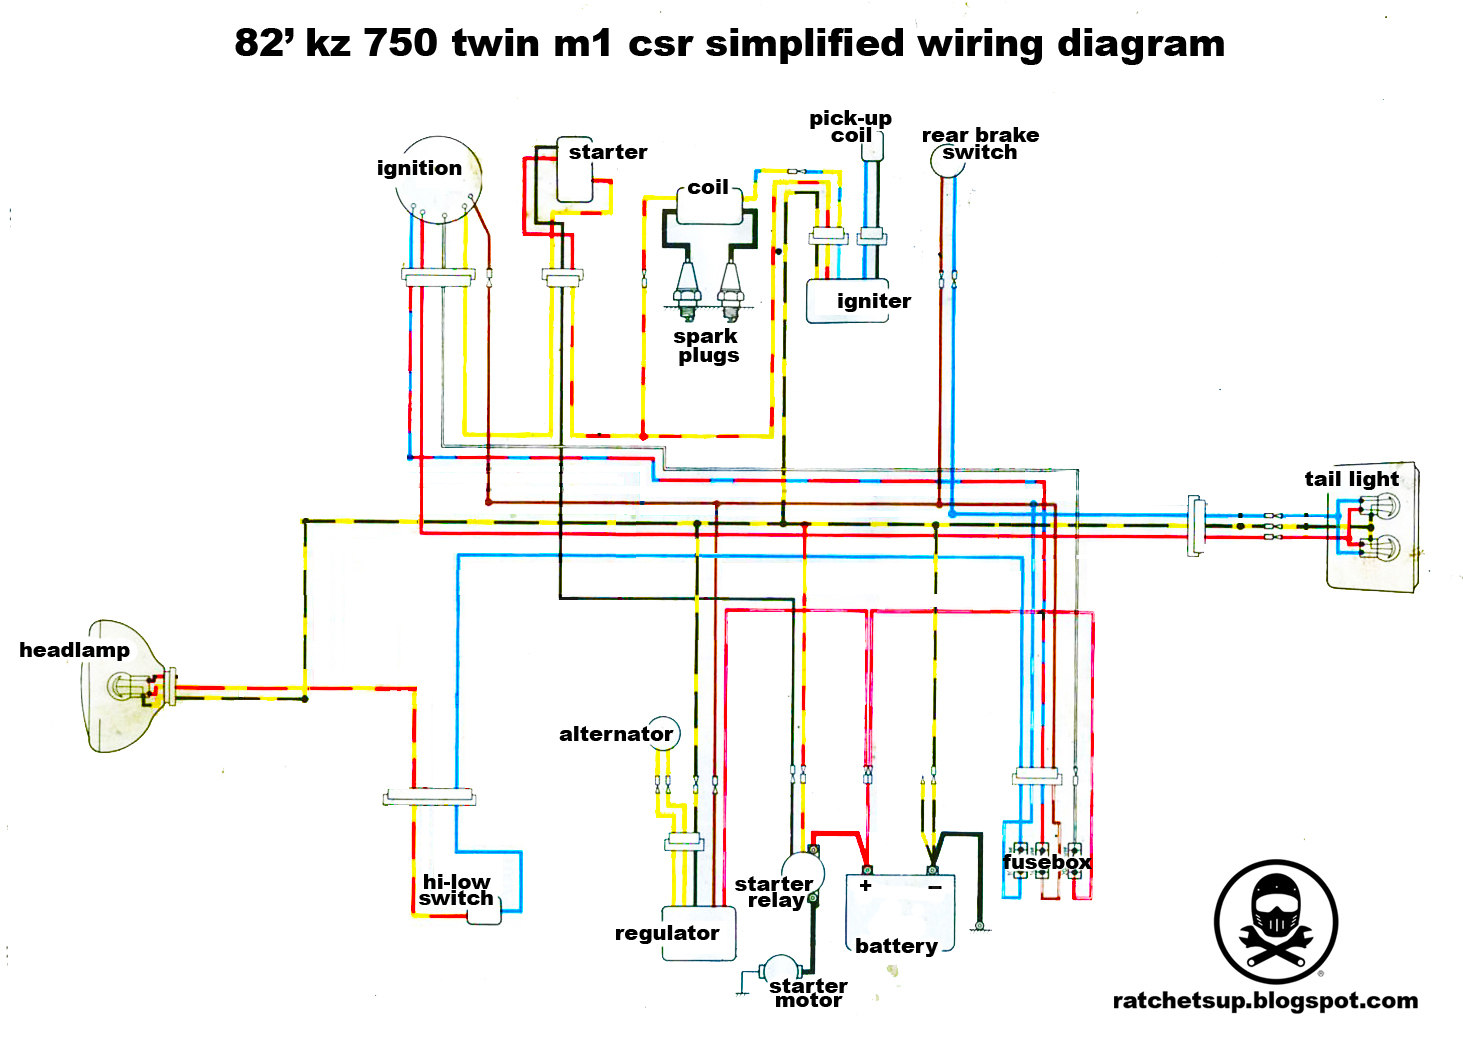 1980 Kawasaki Kz440 Coil Wiring Diagram 39 Images 1987 Honda Trx 250 Free Picture Kz750 Simple 1978 K Z 750 U2022